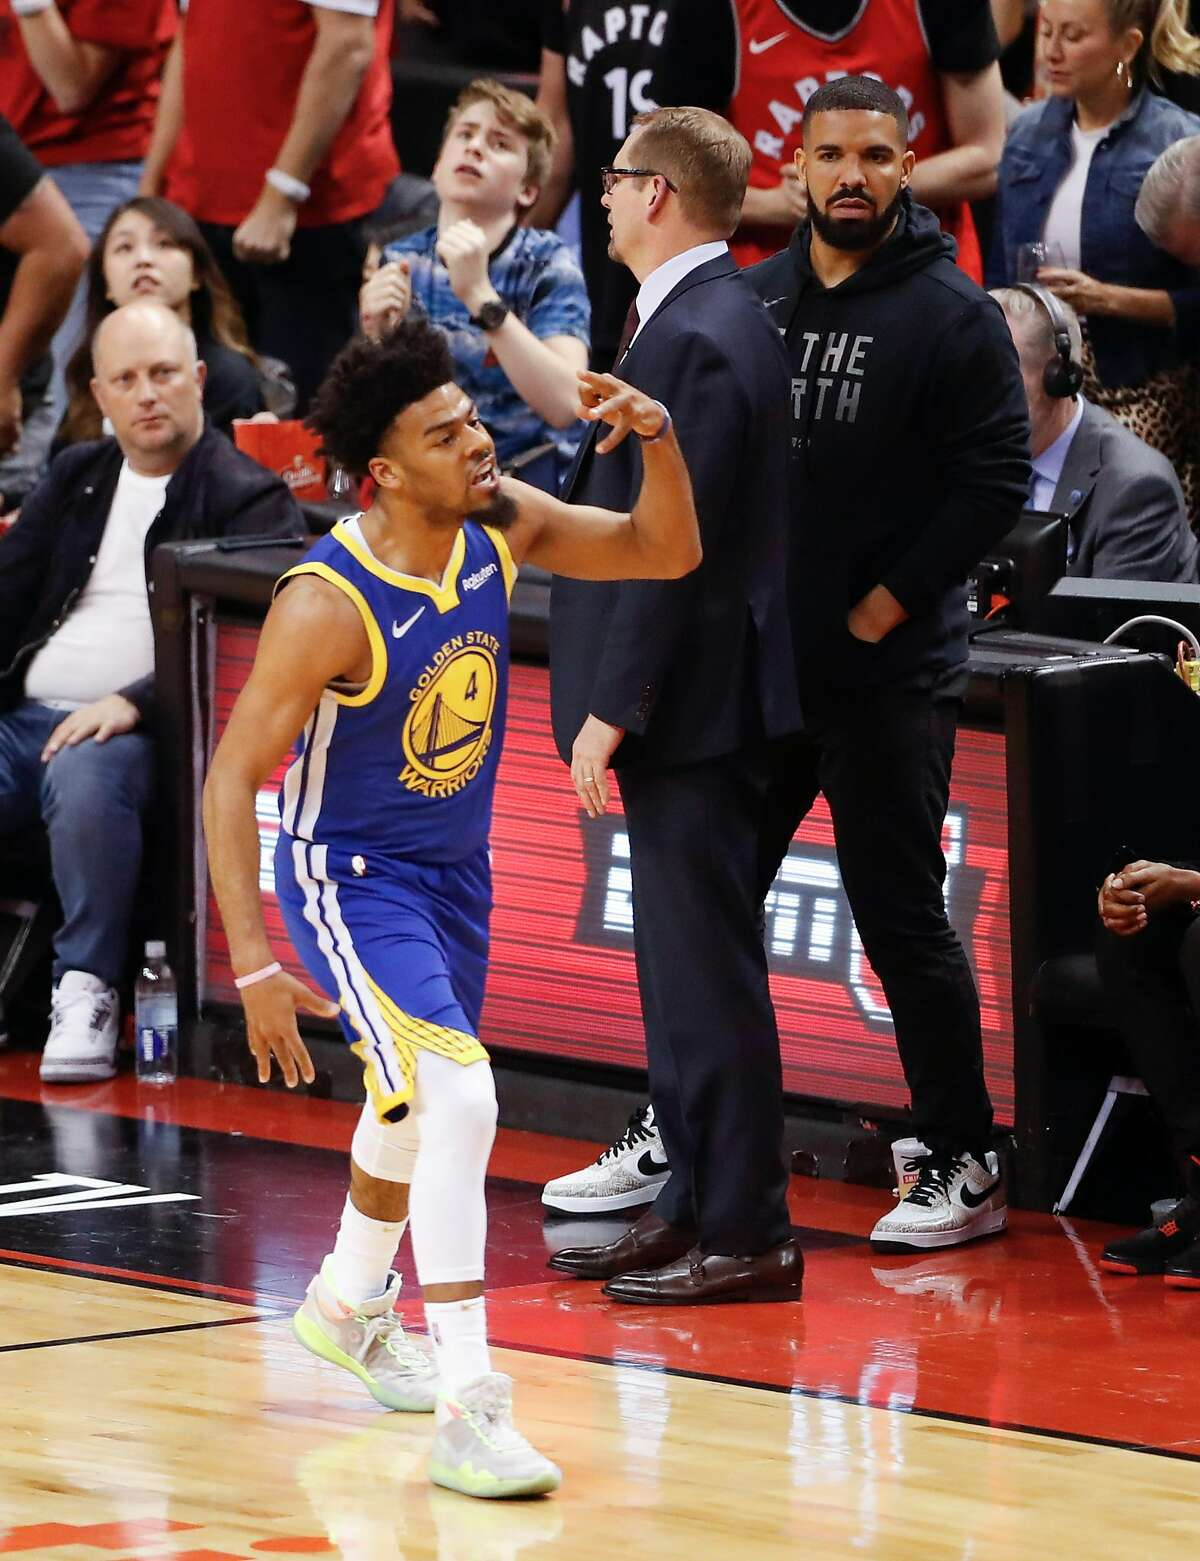 FILE - Golden State Warriors' Quinn Cook reacts after hitting a three-pointer in the fourth quarter during game 2 of the NBA Finals between the Golden State Warriors and the Toronto Raptors at Scotiabank Arena on Sunday, June 2, 2019 in Toronto, Ontario, Canada.